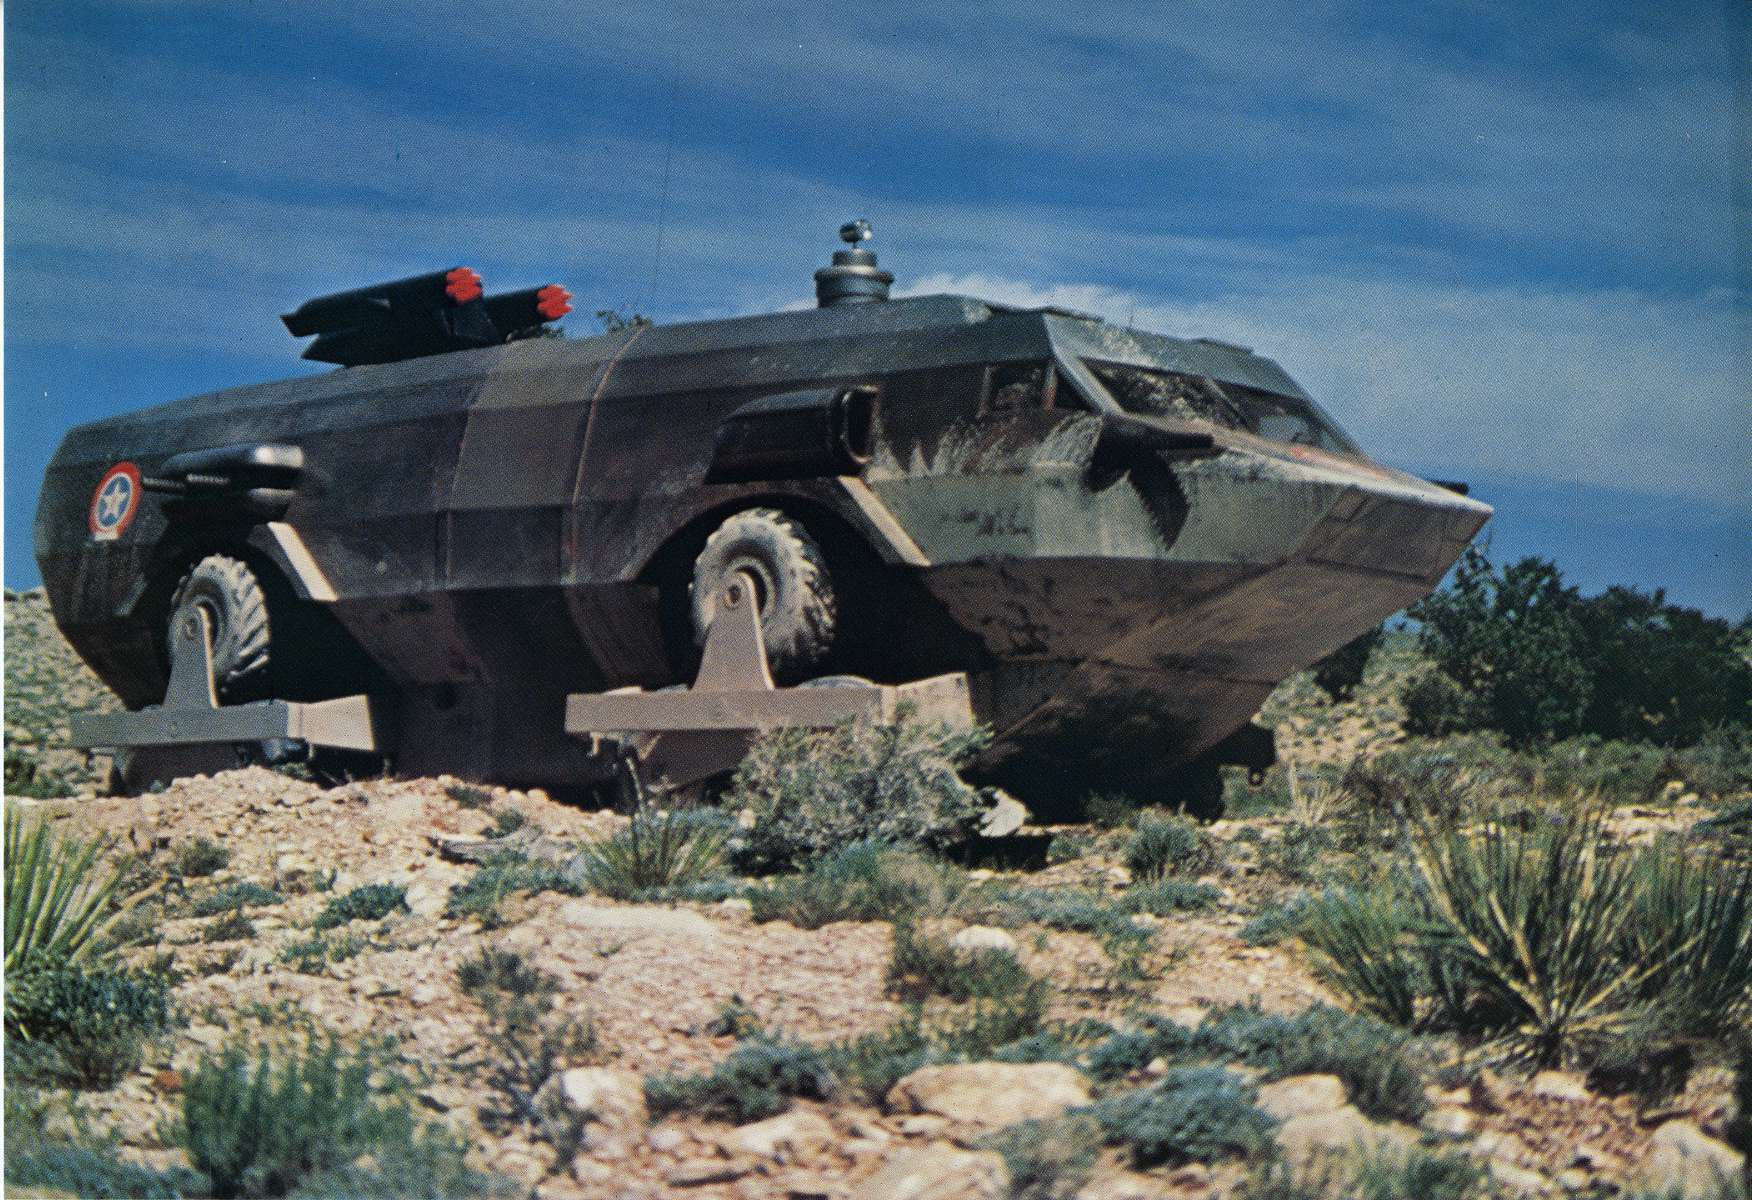 The Landmaster in Damnation Alley (1977)